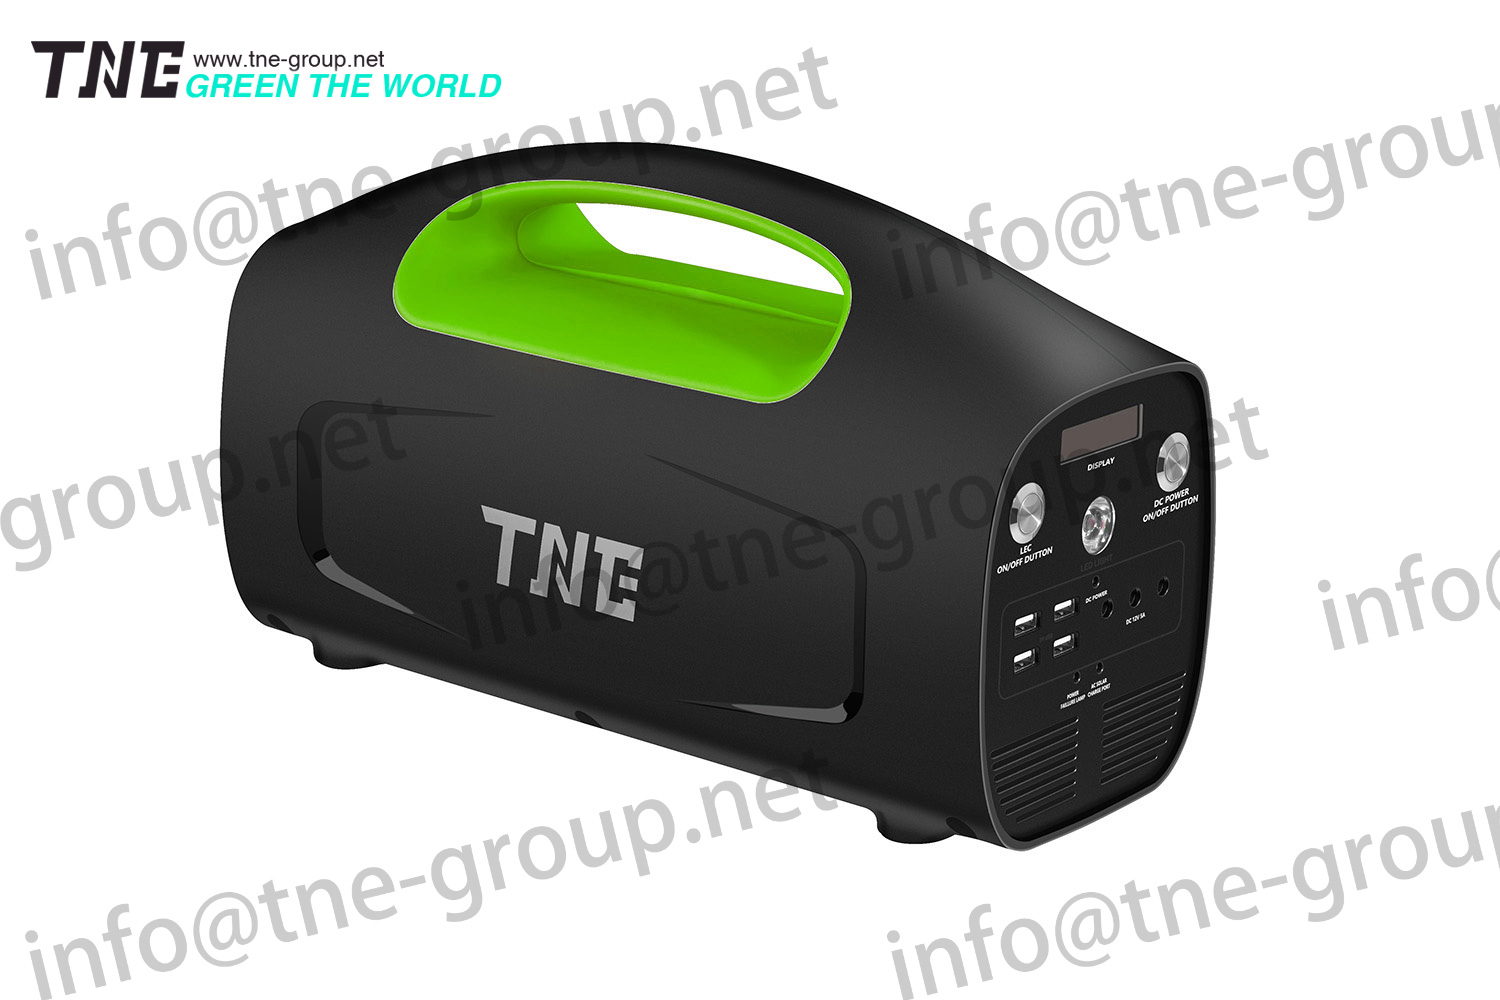 TNE Outdoor Industrial Ups With Charger offline ups 1000va 600w